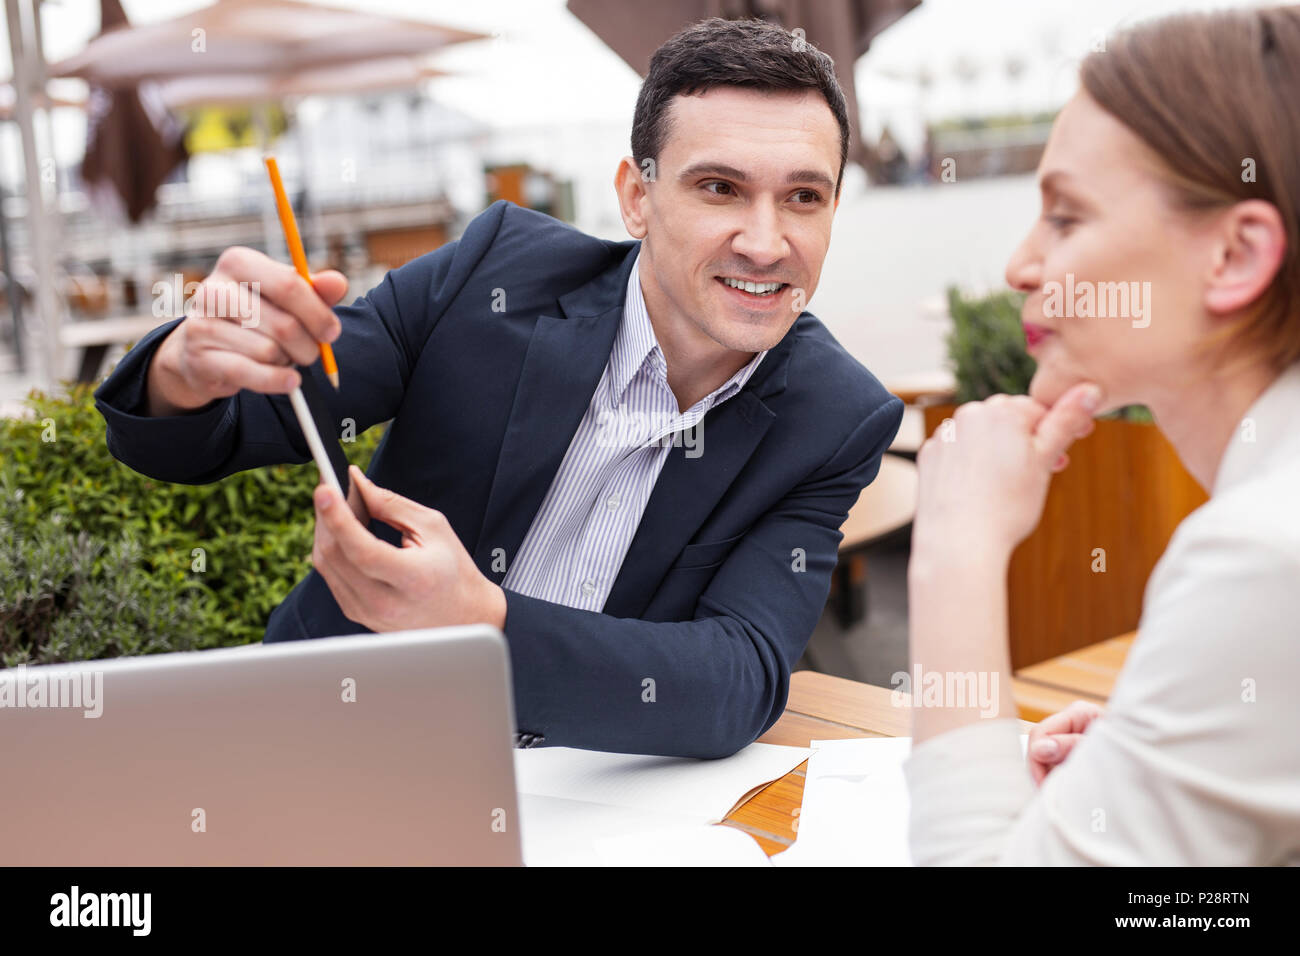 Successful industrious chef explaining work issues - Stock Image